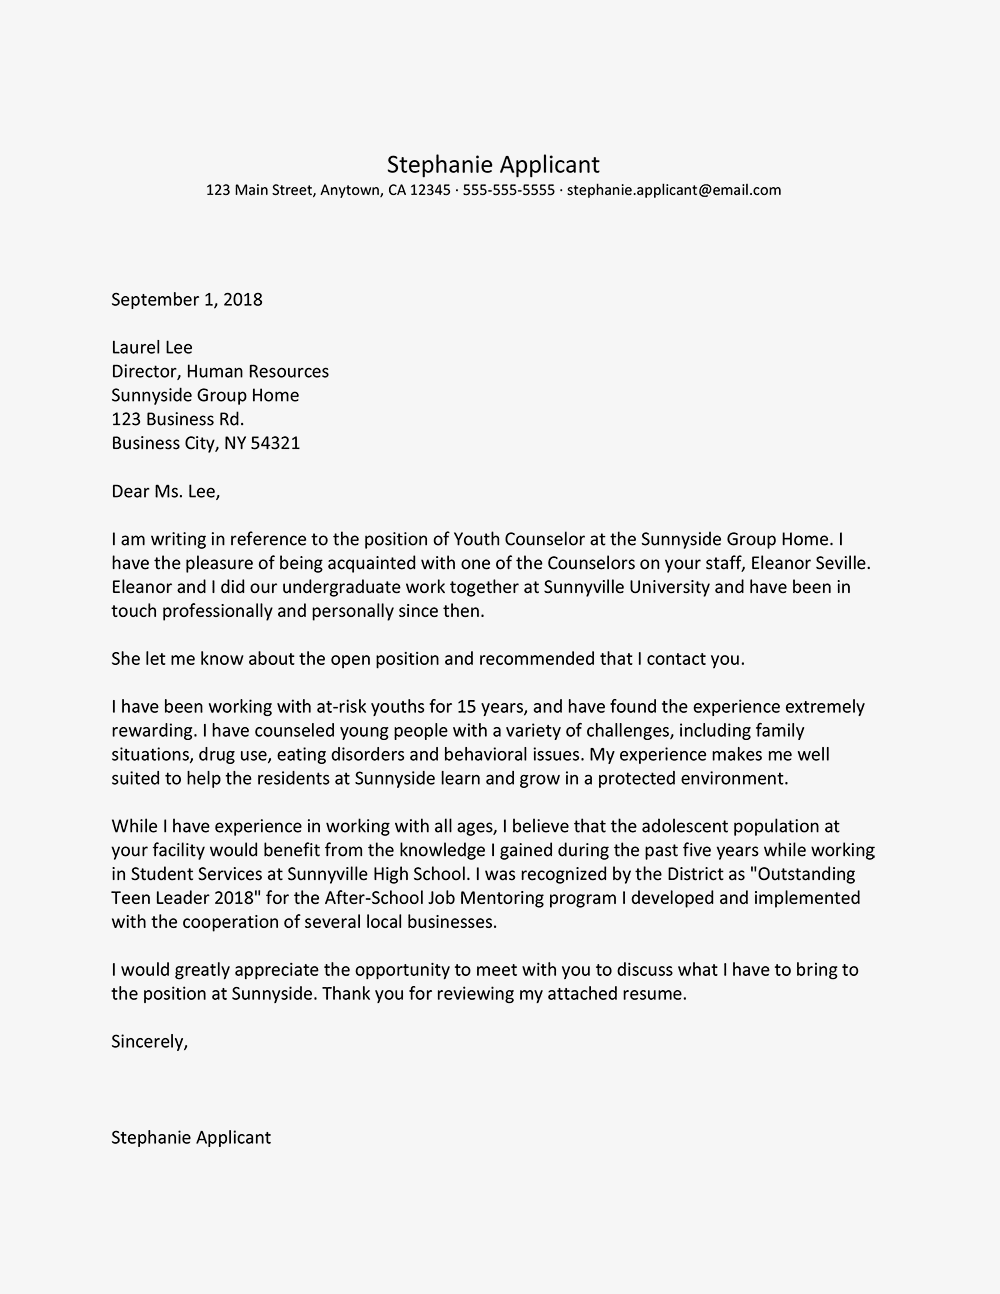 cover letter mentioning referral - Tosya.magdalene-project.org